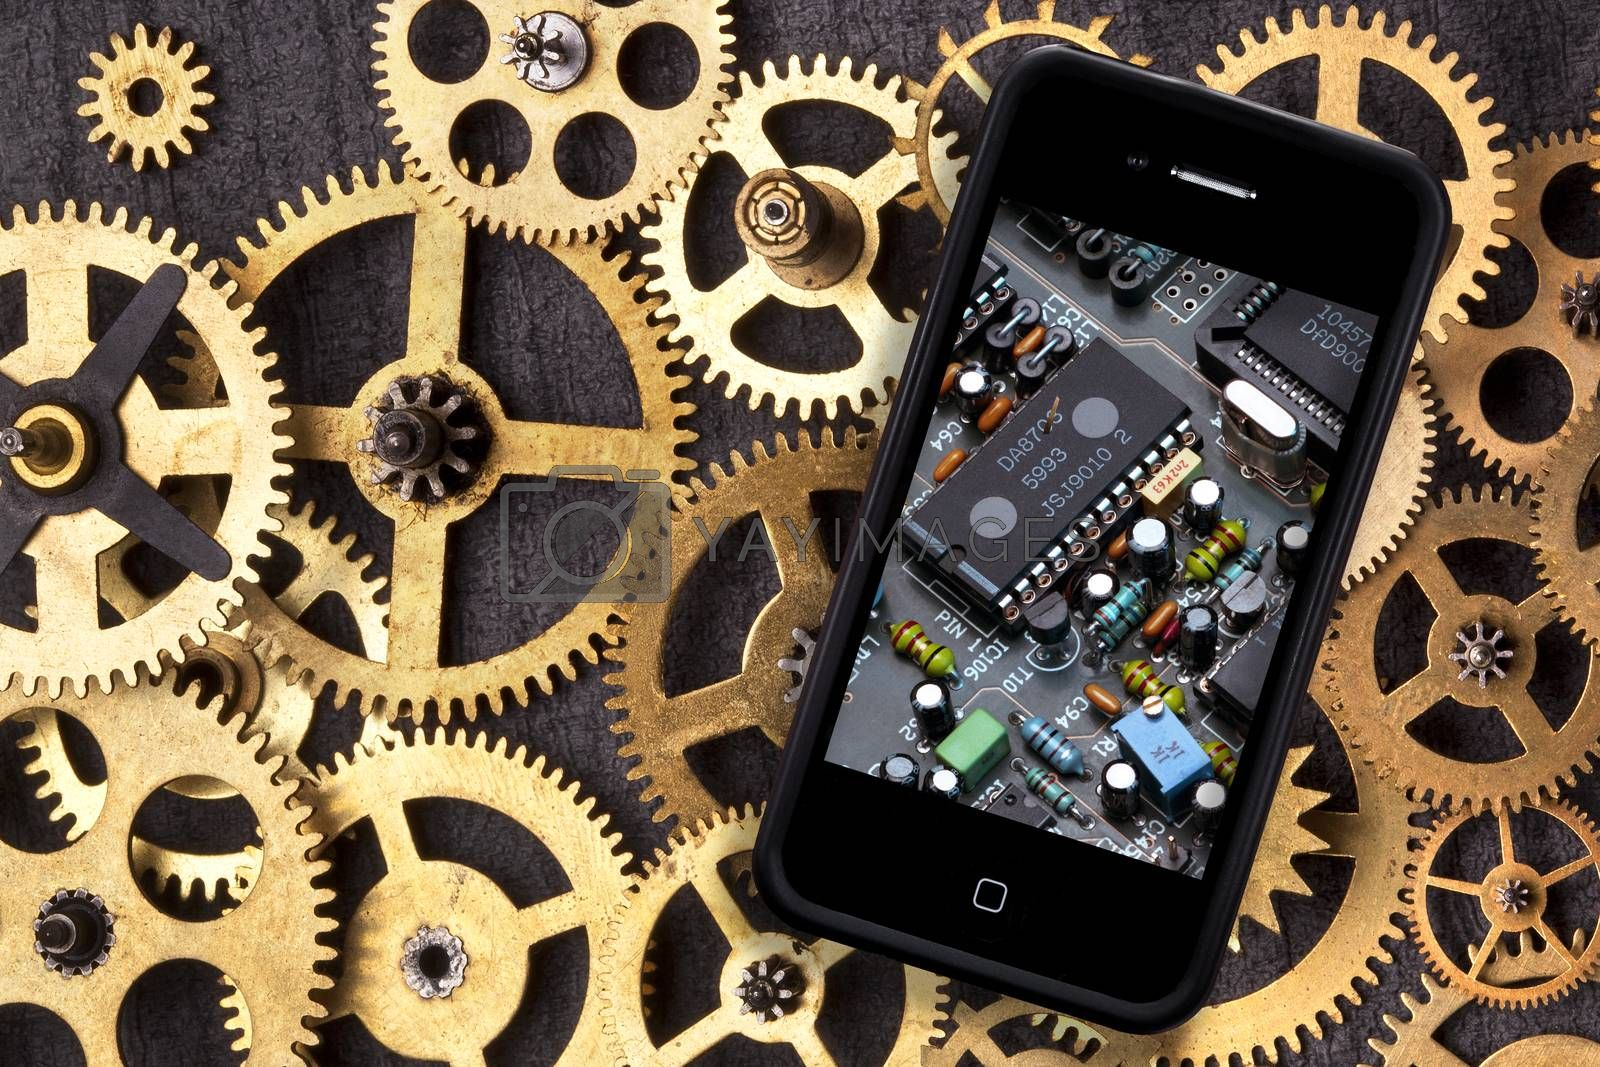 Old and New Technology - Old clockwork cogs and gears and a smartphone with digital technology